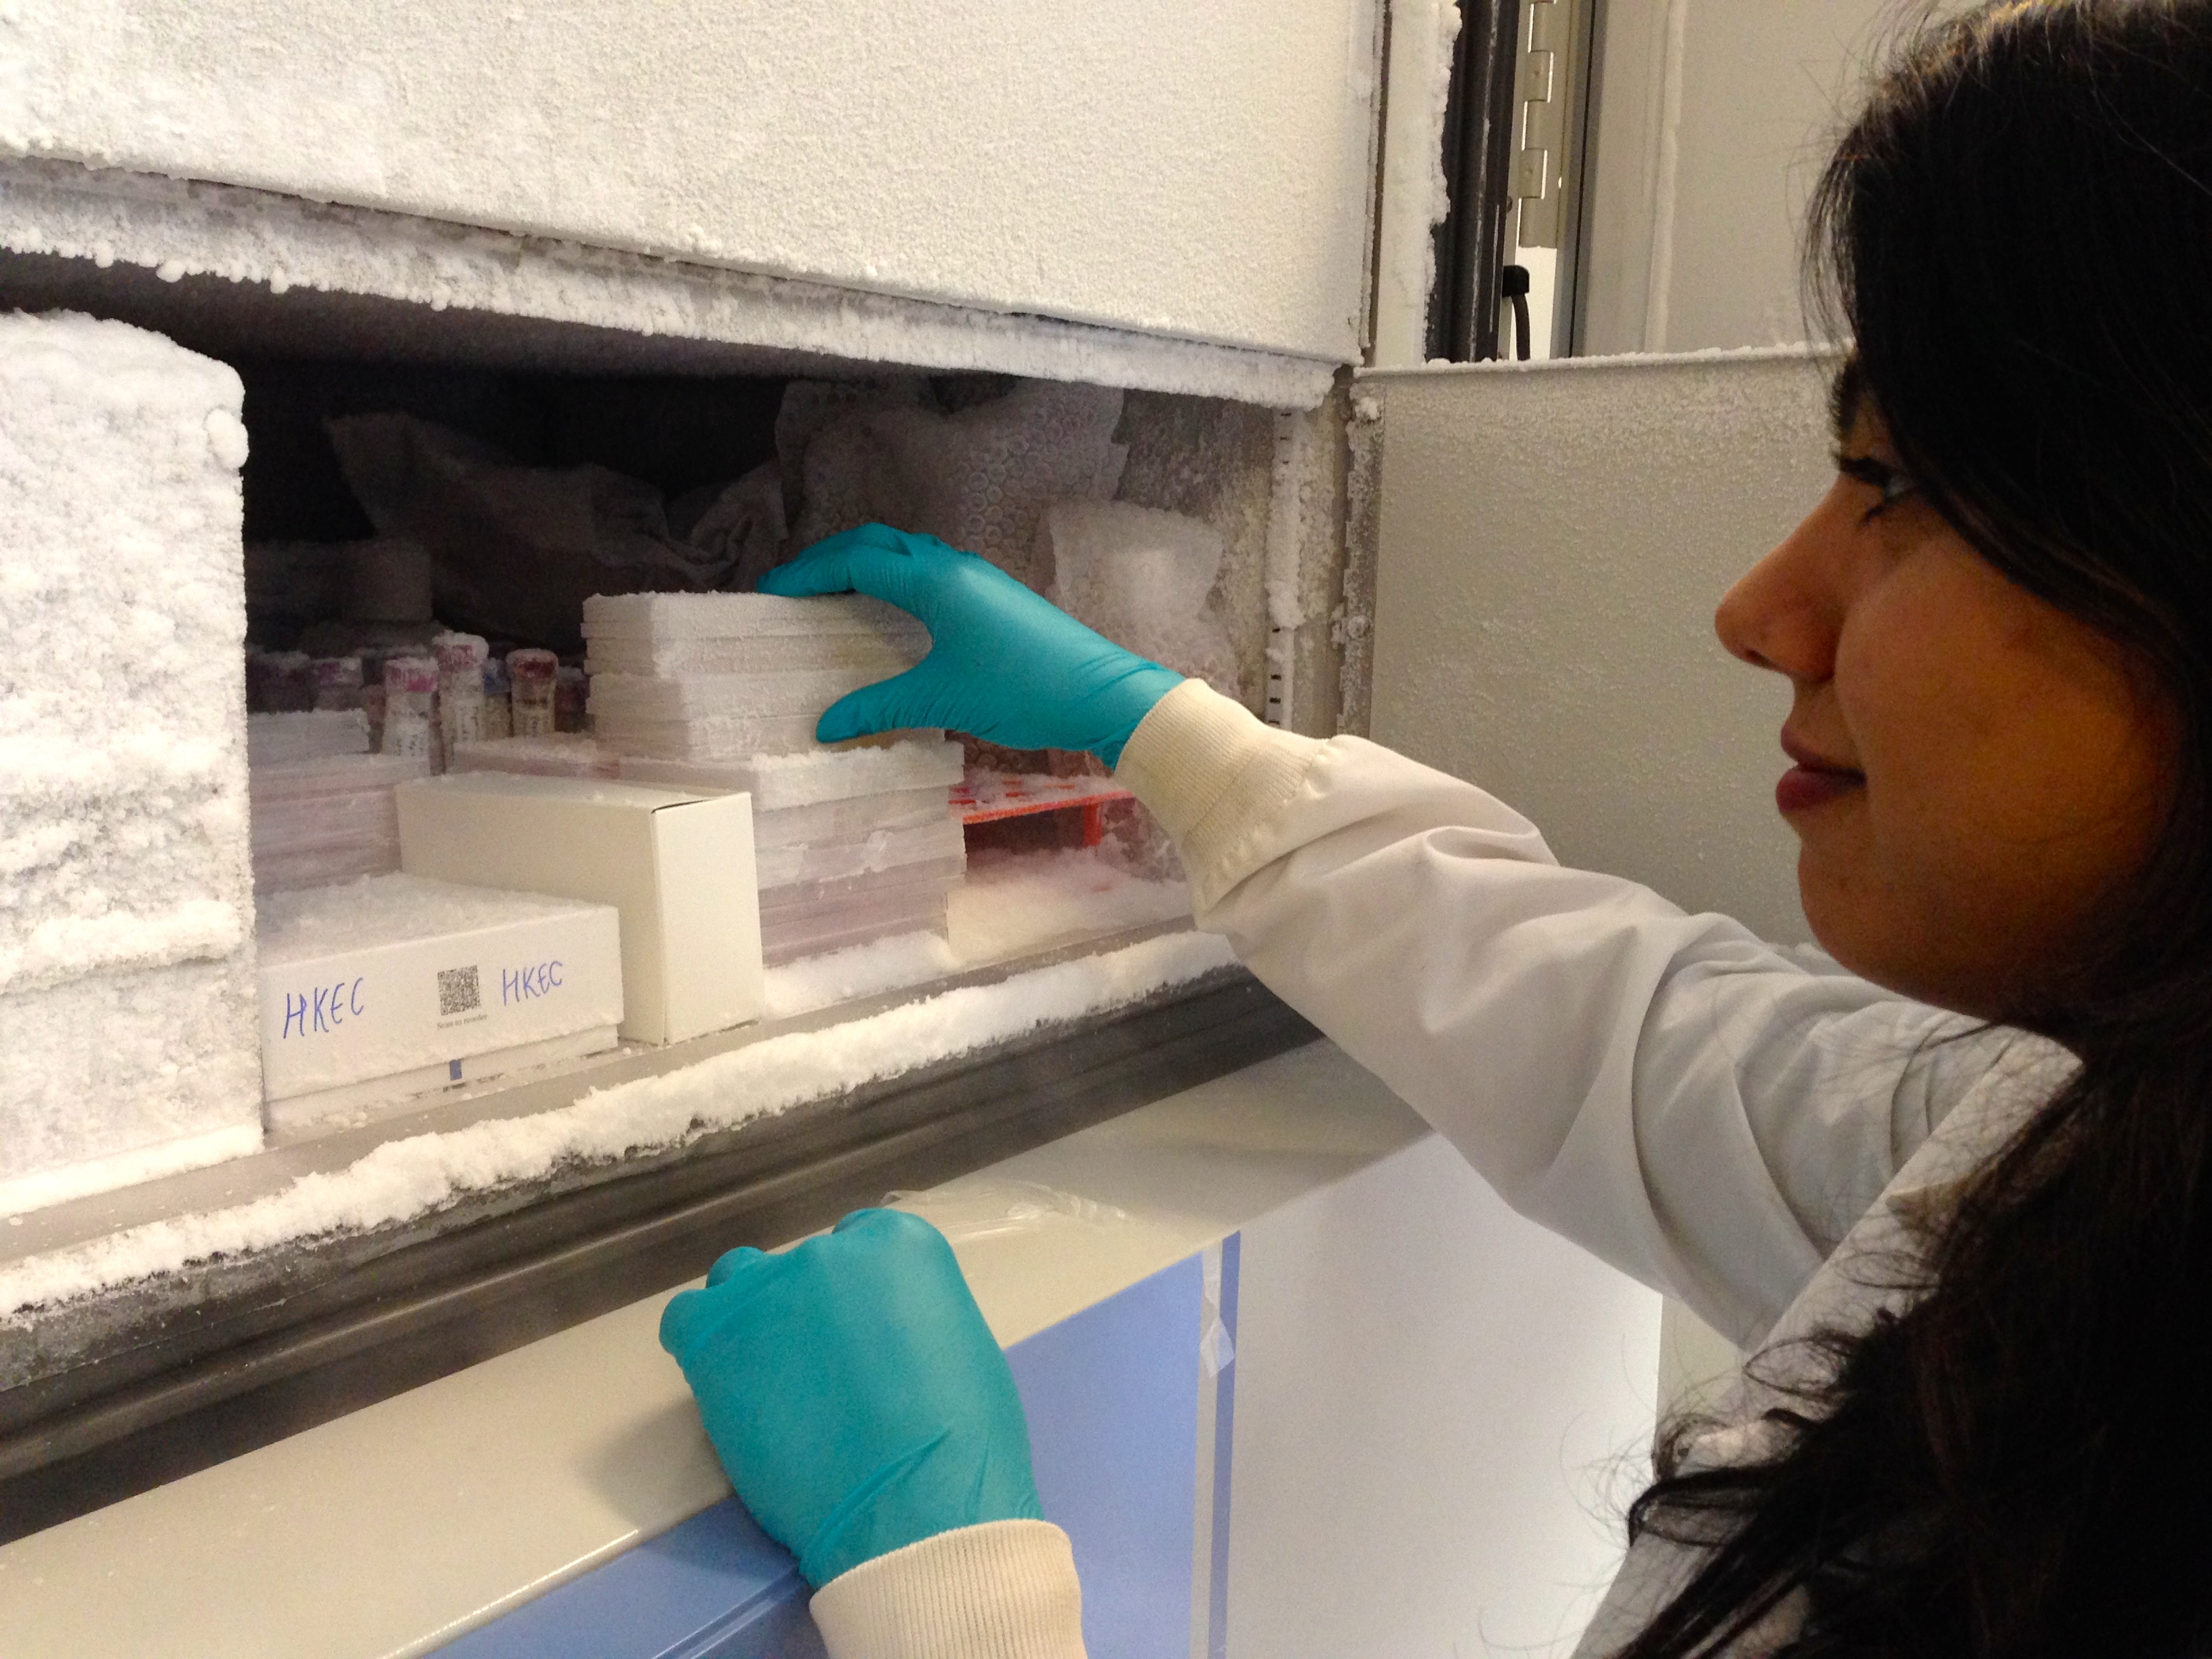 At Second Genome, hundreds of stool samples from patients with IBD and other diseases are stored in freezers. (Amy Standen/KQED)